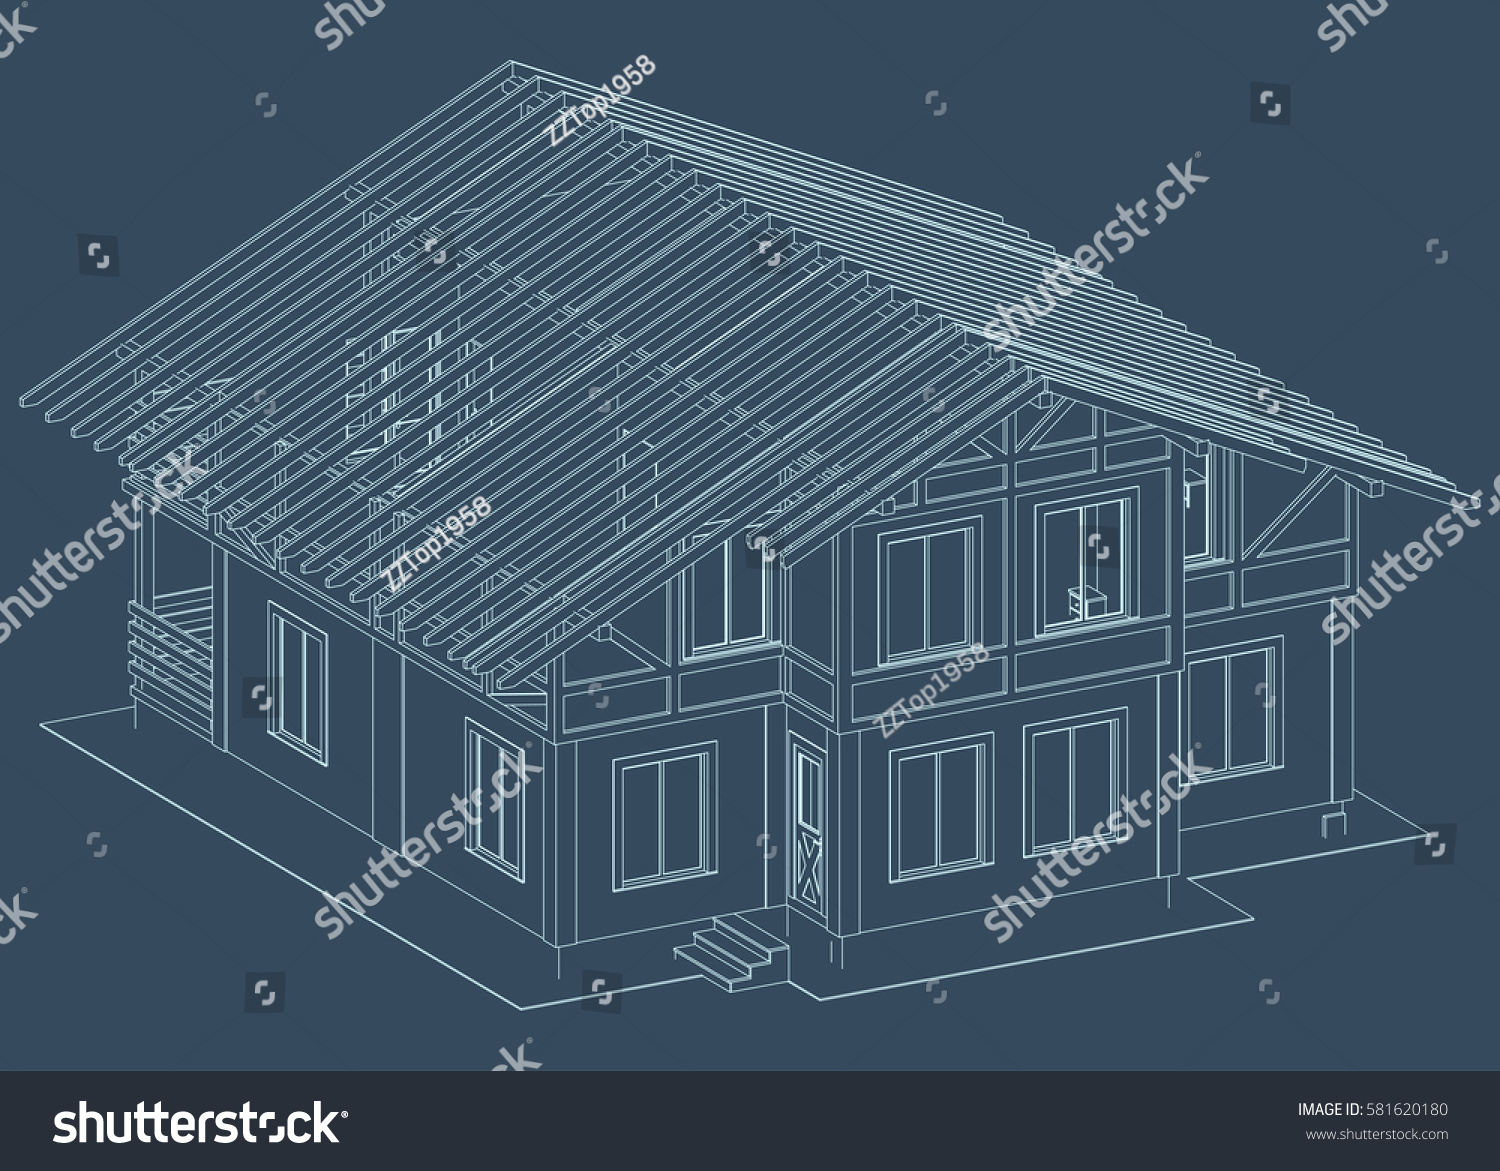 Blueprint architectural design halftimbered residential house the blueprint of architectural design of half timbered residential house with the rafters of the malvernweather Choice Image